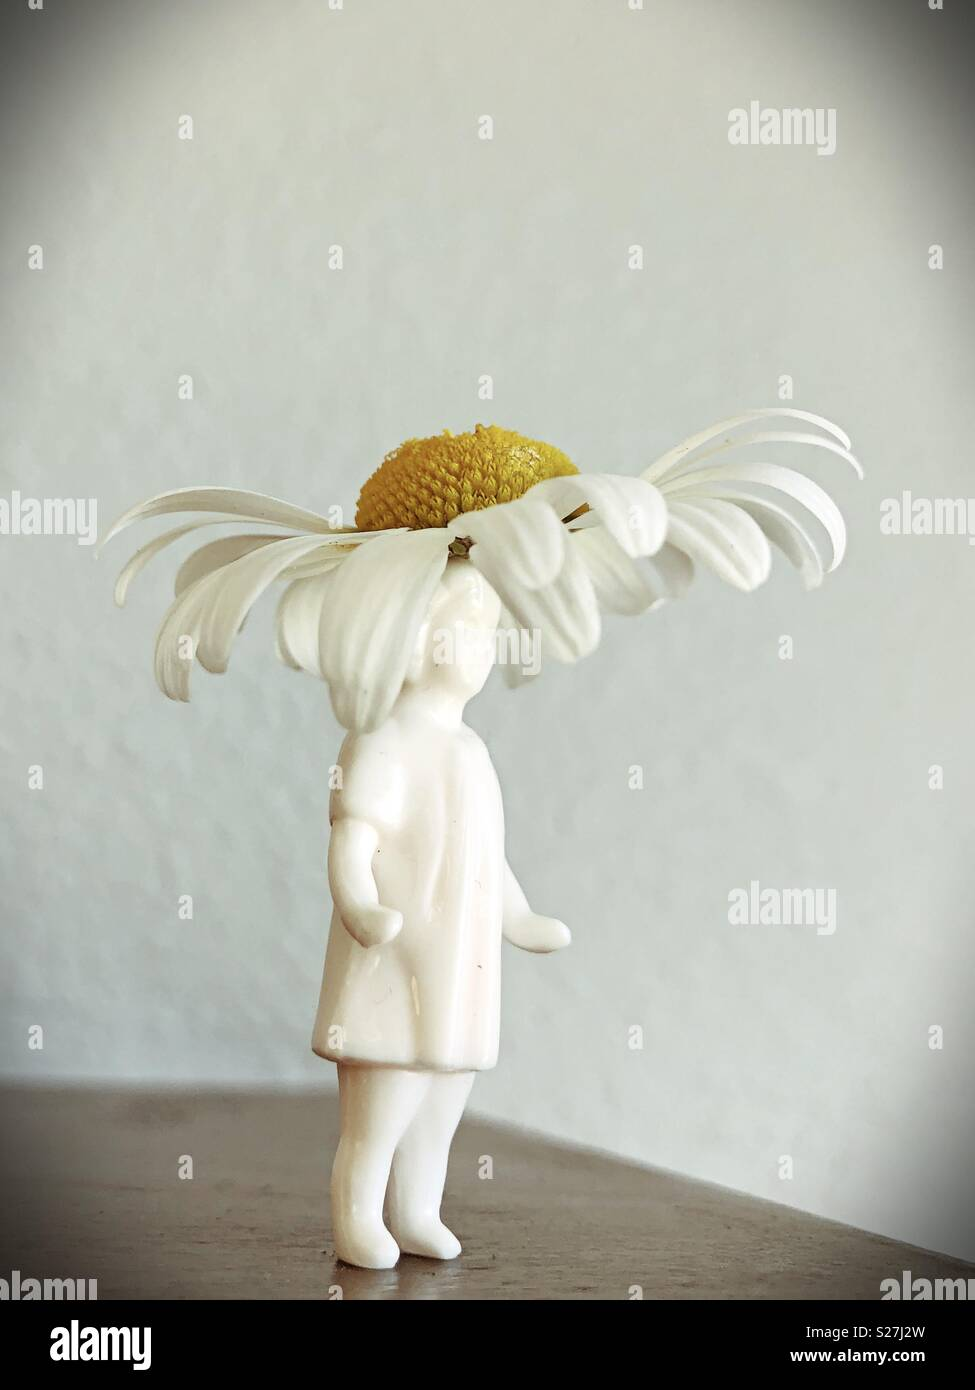 """A retro looking figurine of a girl with a real daisy """"hat"""". - Stock Image"""